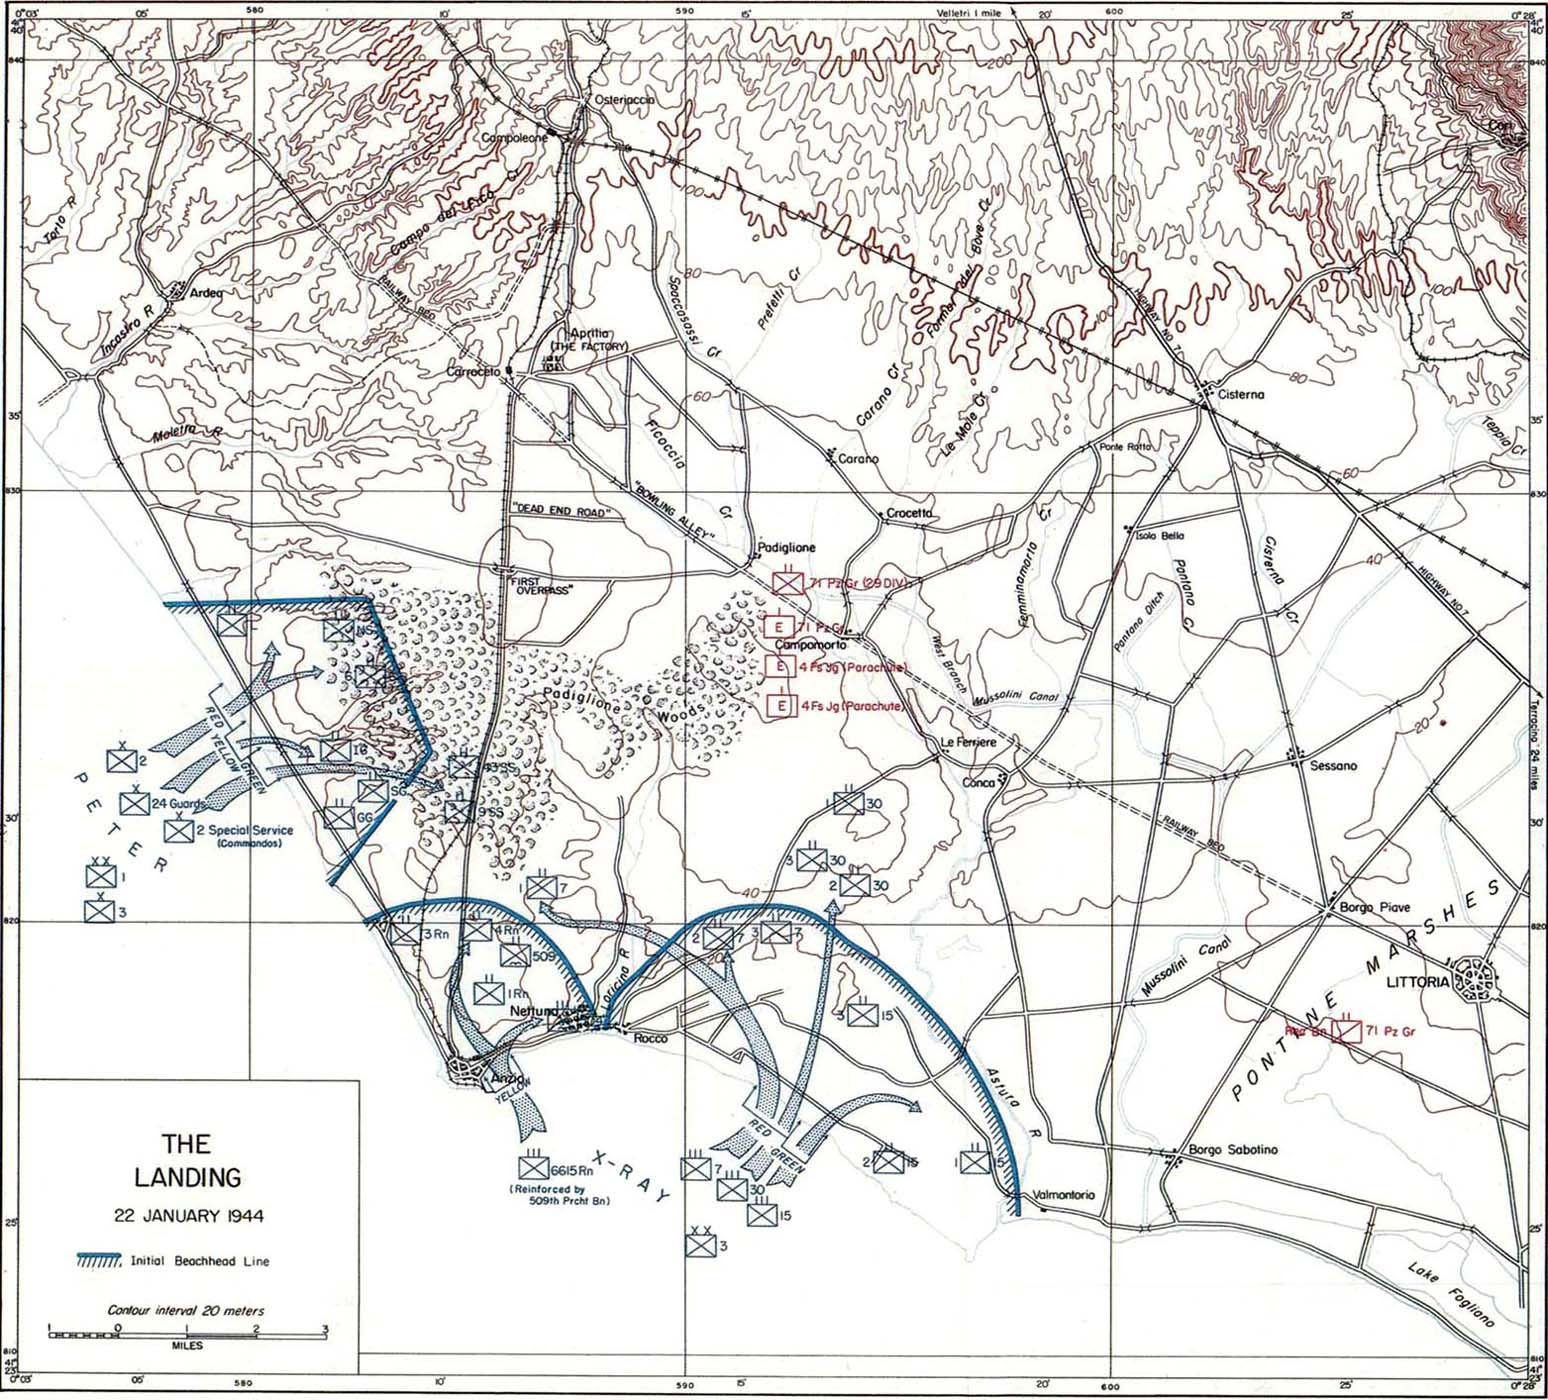 Anzio 1944 Center of Military History